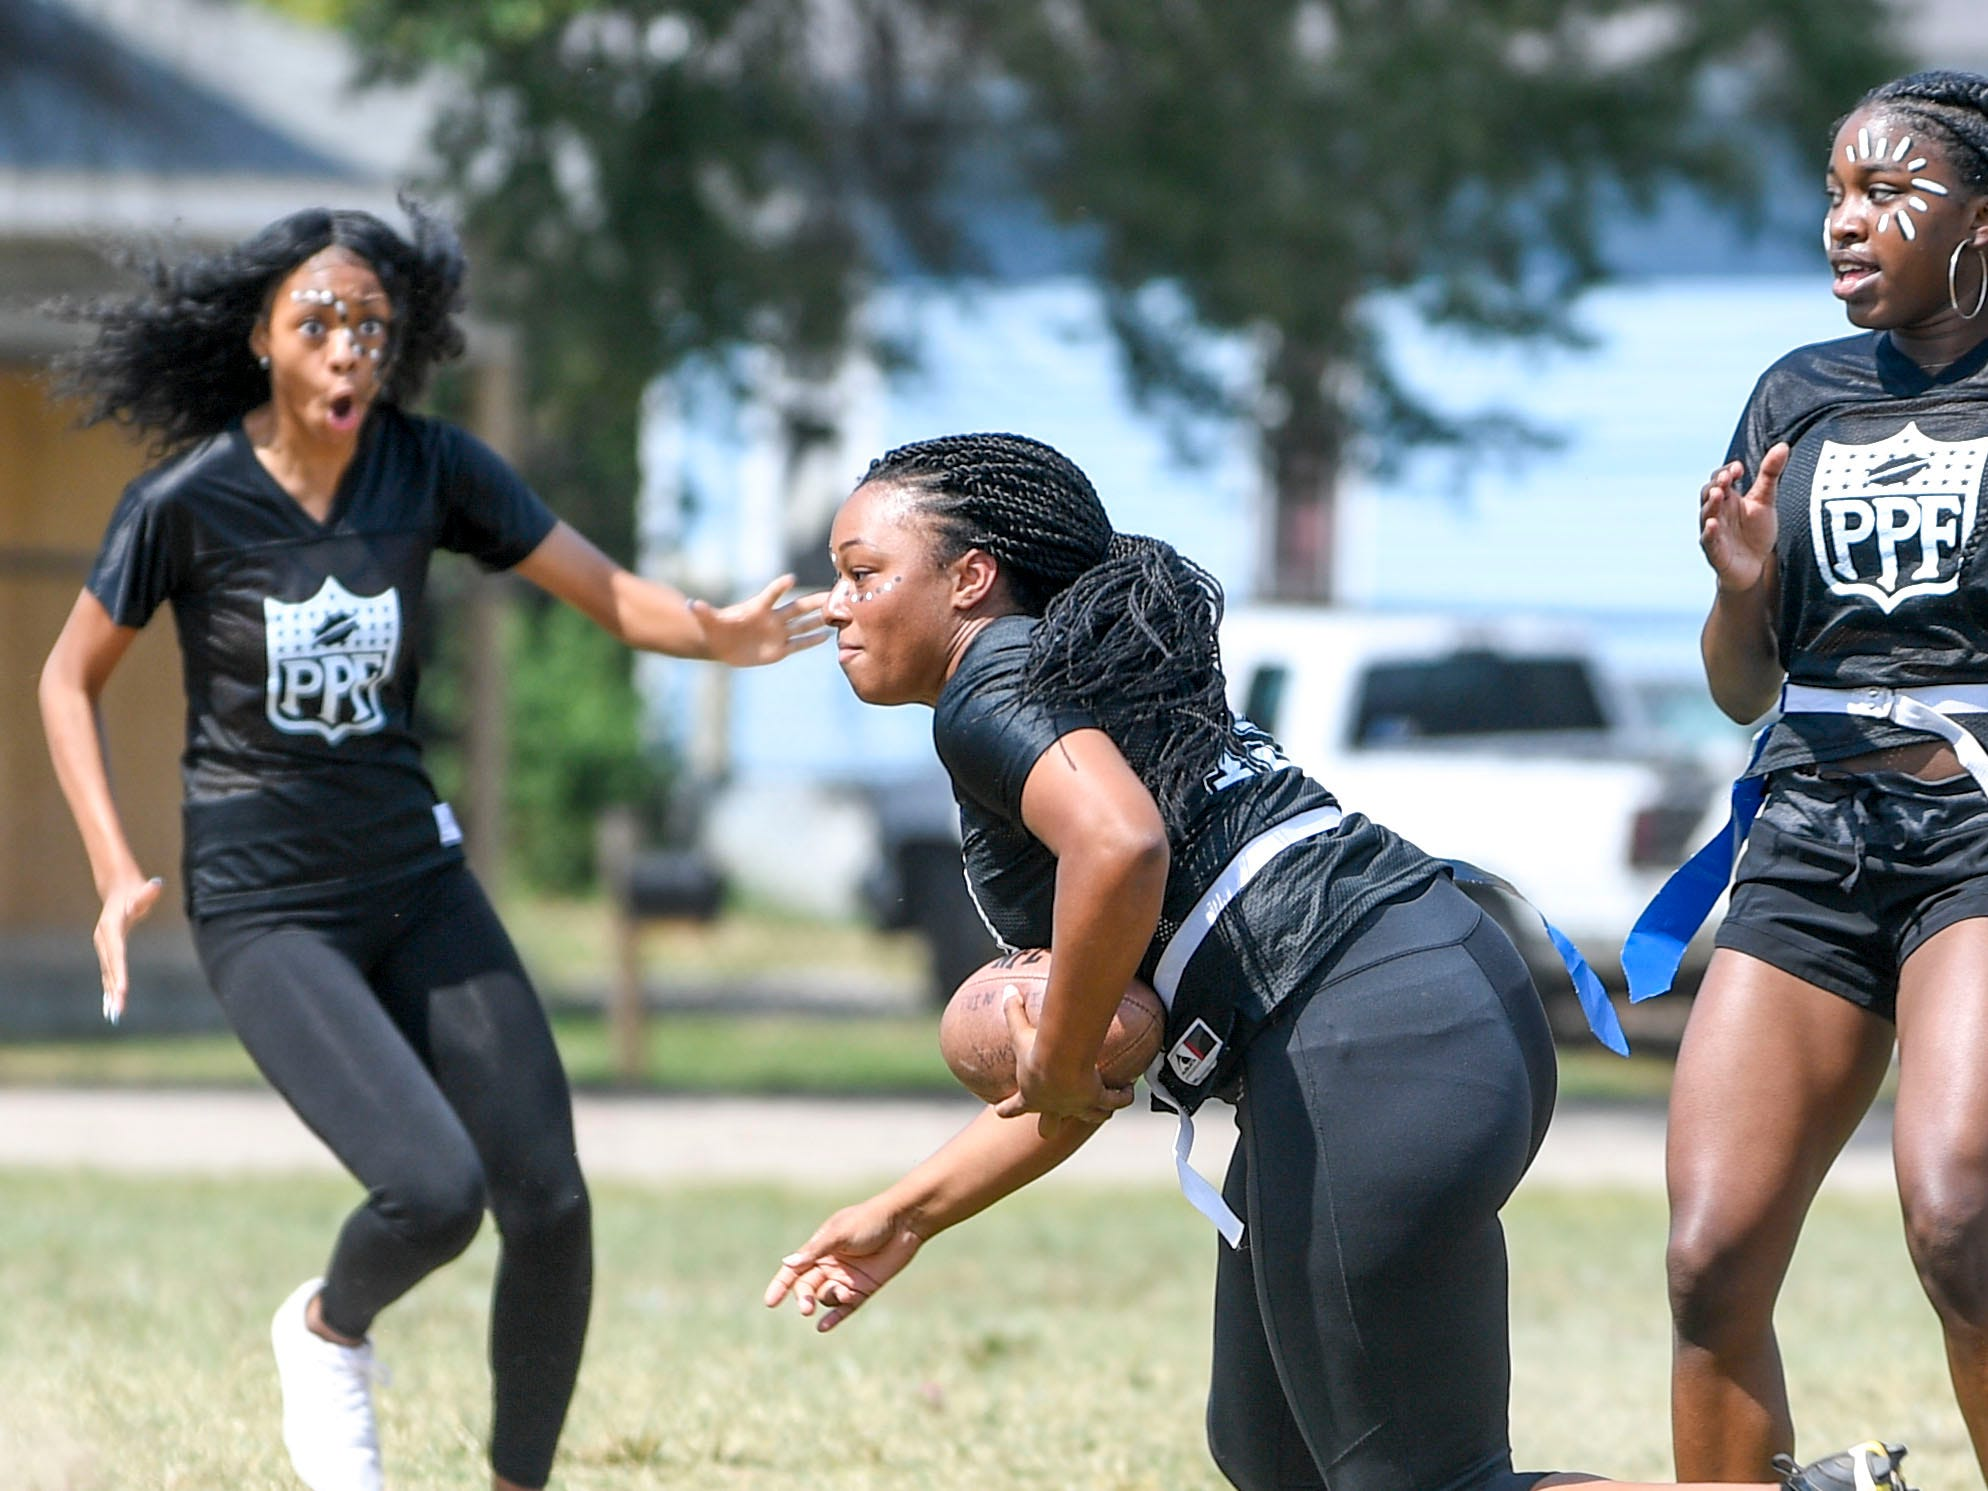 Senior players react to an interception during the 2017 Powder Puff game at Madison Academic High School in Jackson, Tenn., on Friday, Sept. 21, 2018.